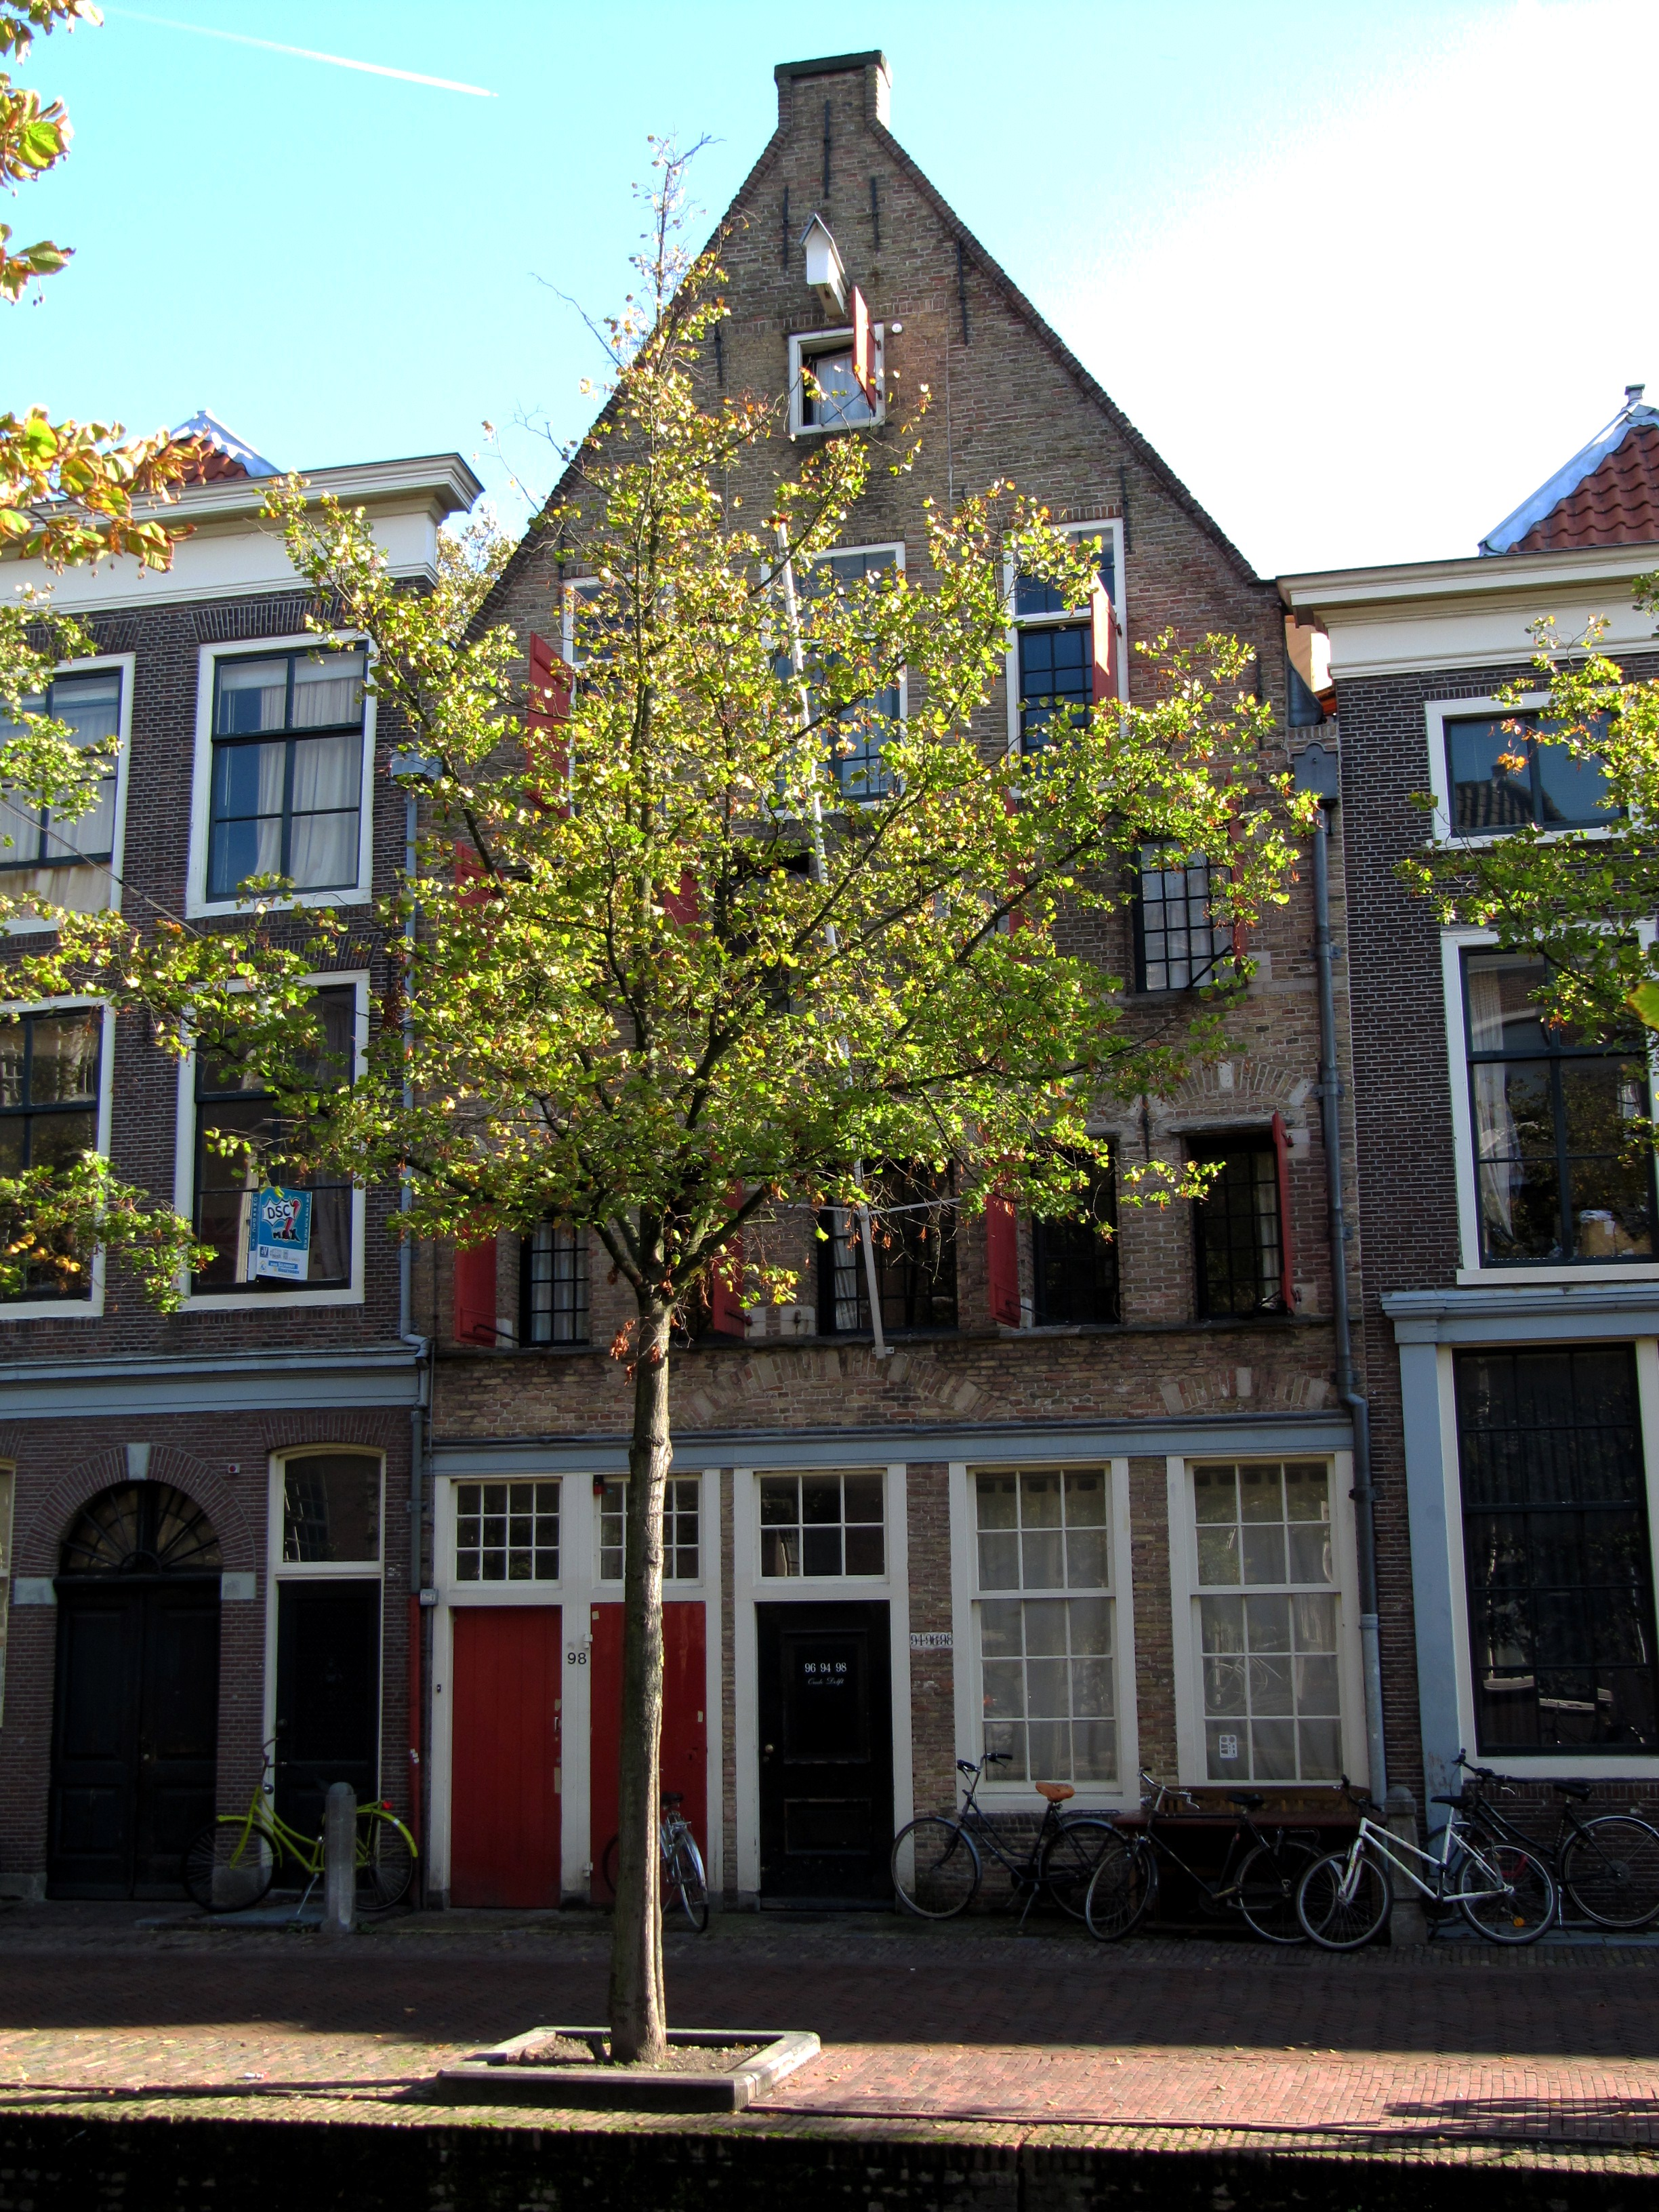 http://upload.wikimedia.org/wikipedia/commons/5/53/RM12086_Delft_-_Oude_Delft_94-96.jpg